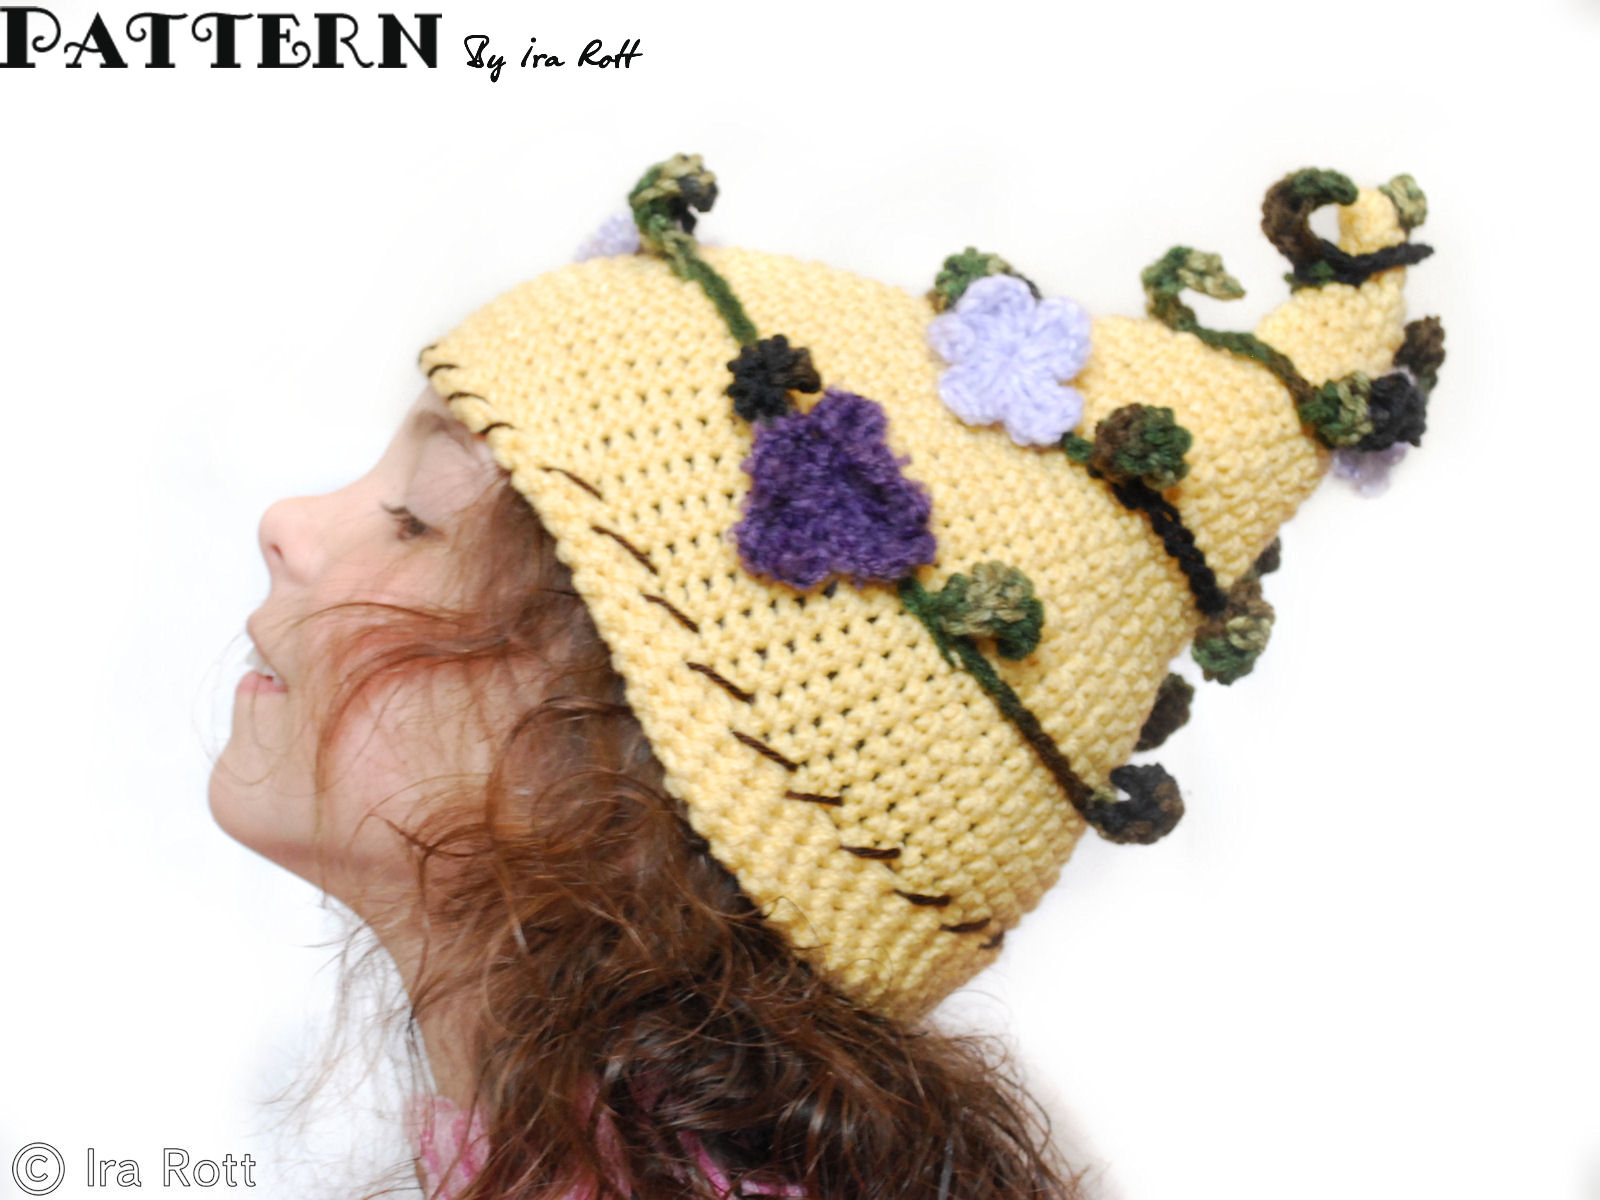 Crochet Pattern Top Hat : Fashion Crochet Design By Ira Rott: Whimsical Pixie Beanie ...